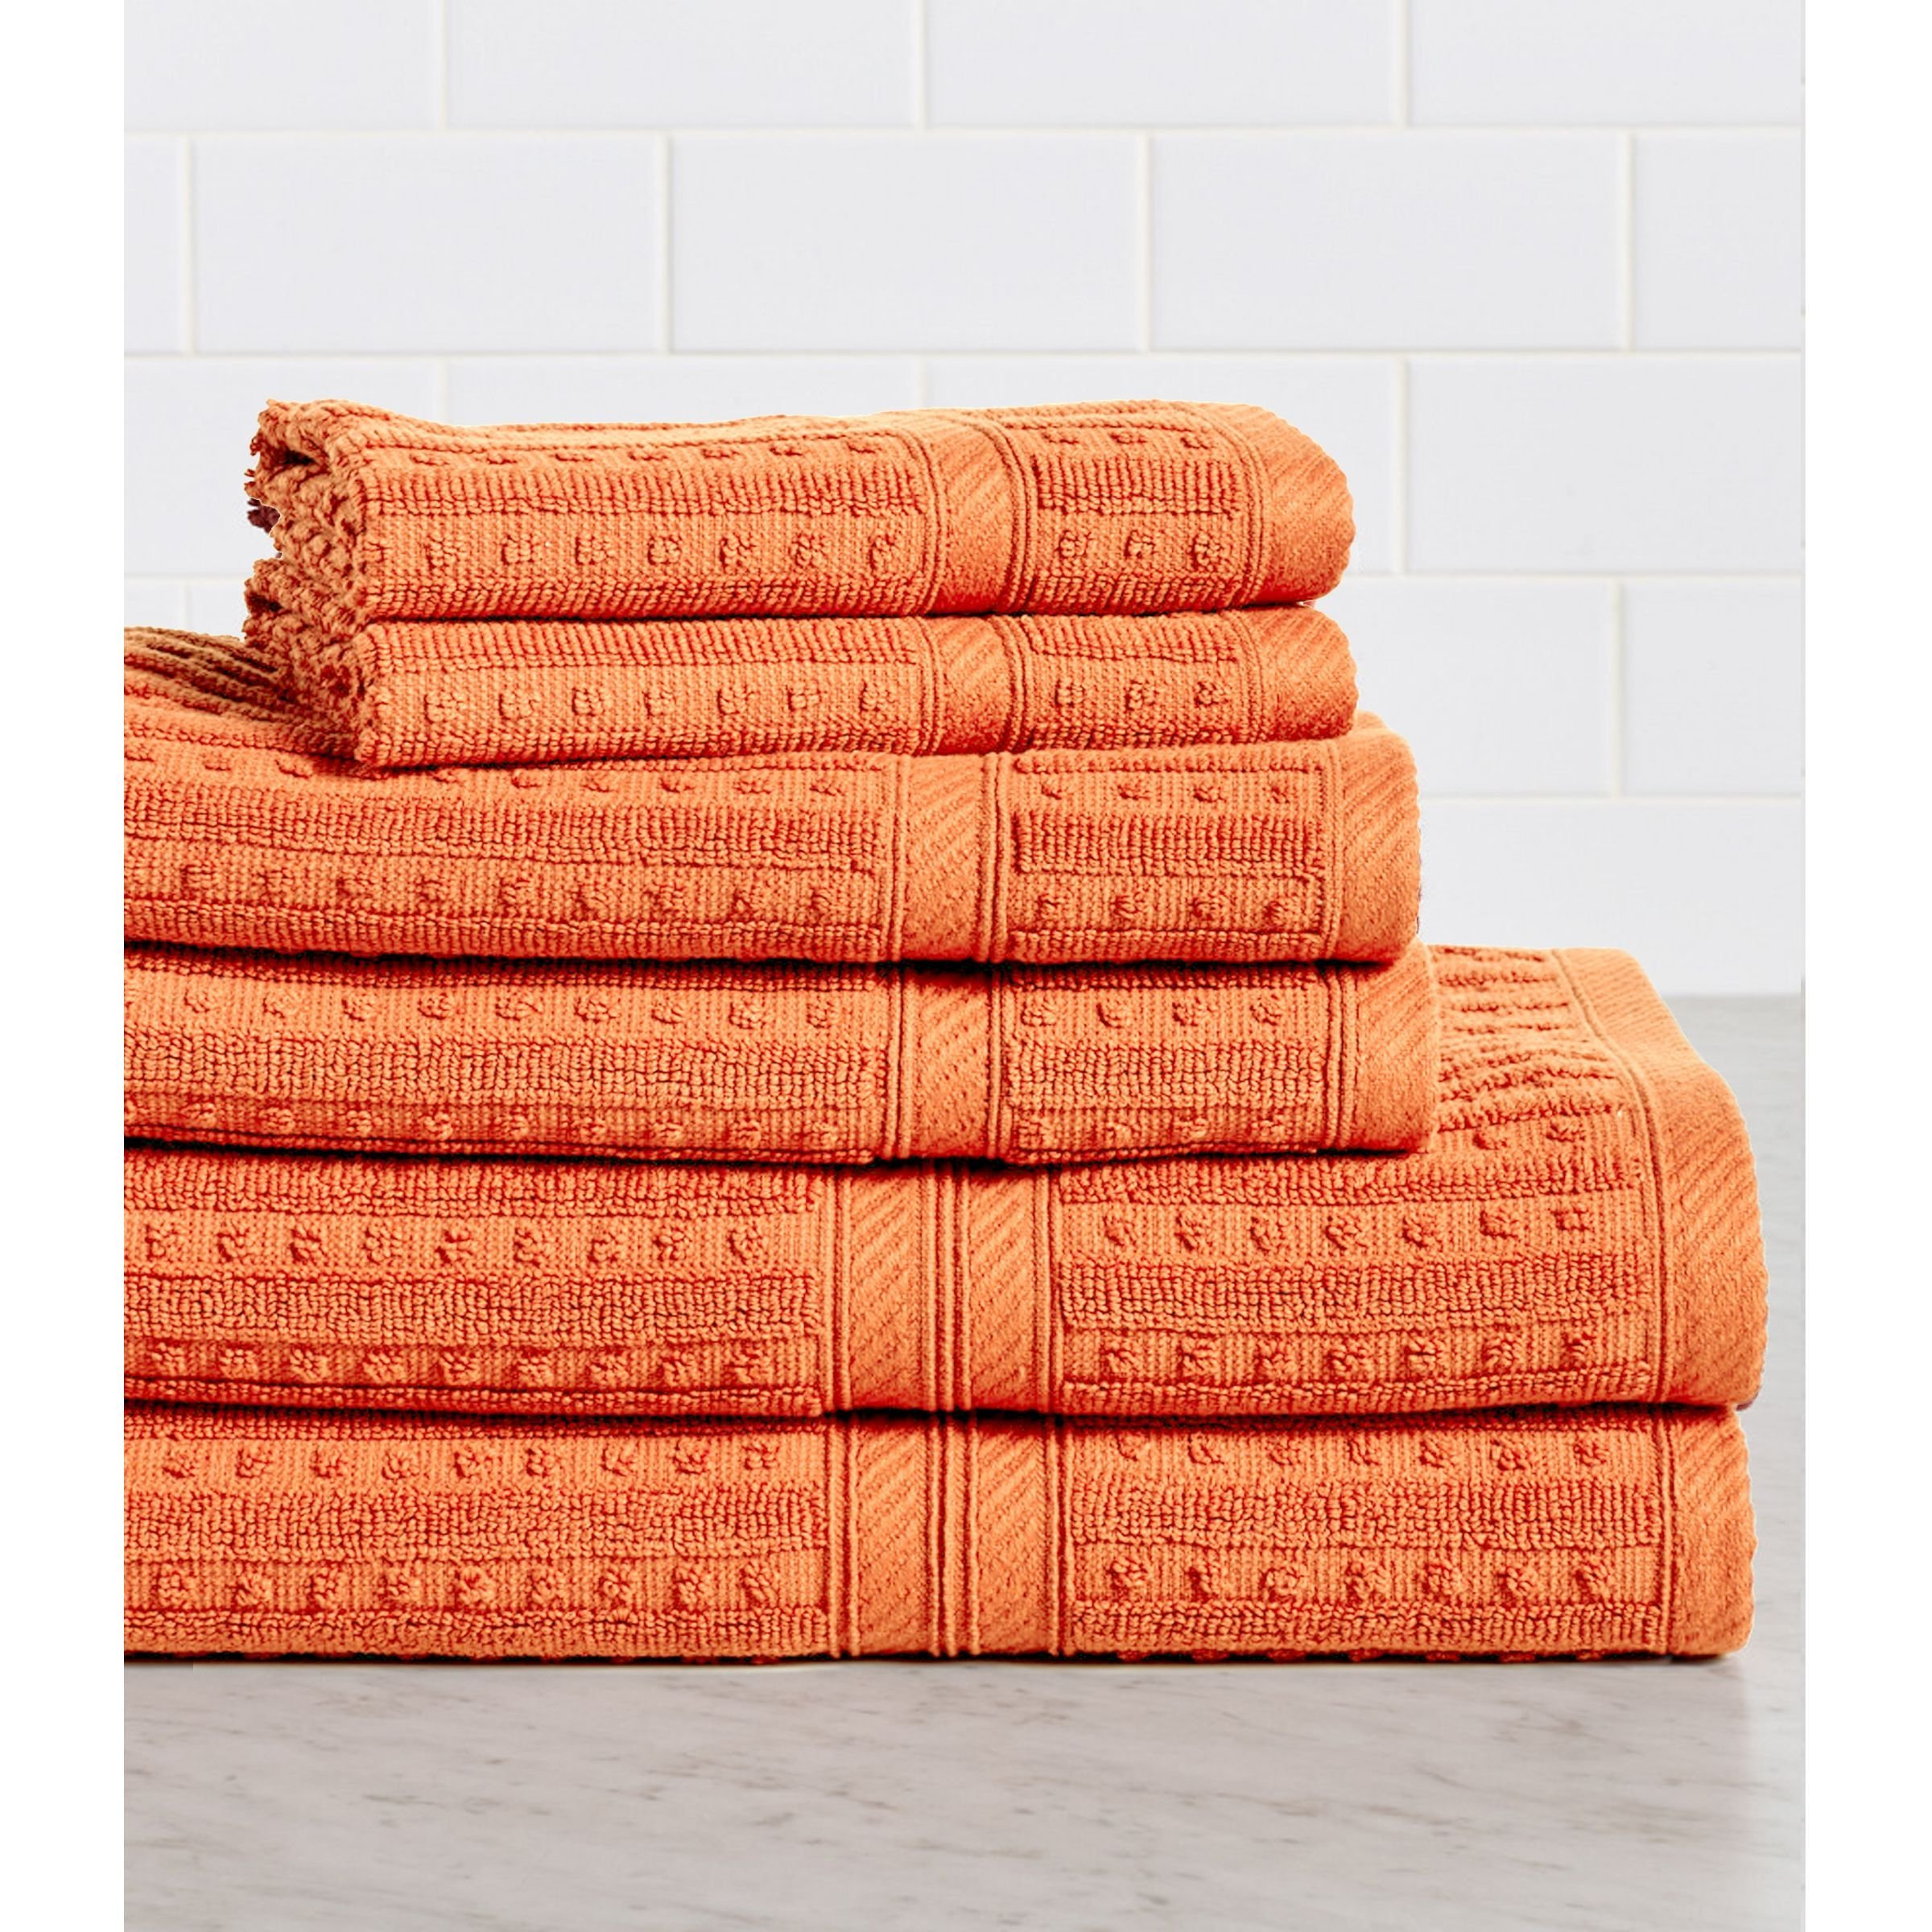 HomeCrate Naples 100% Cotton 6 Piece Towel Set - Coral - Hotel Quality, Super Soft and Highly Absorbent by HomeCrate